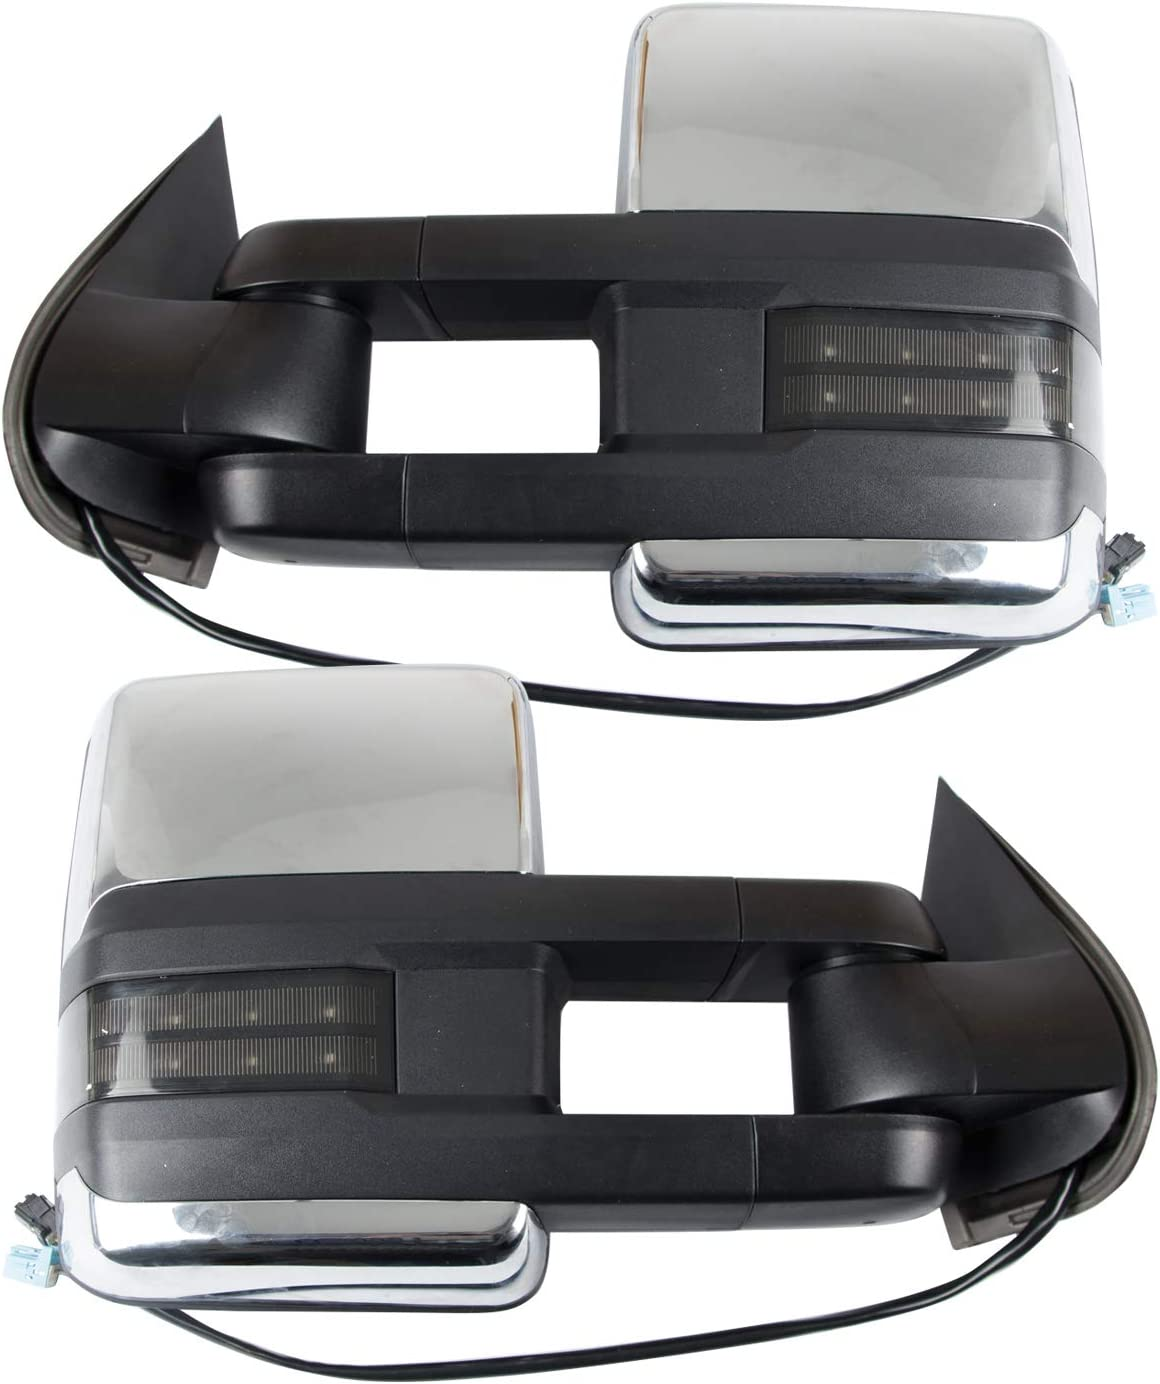 RANSOTO 1 pair LED turn Signal Light Tow Mirrors Compatible with 2003-2006 Chevy Silverado//Tahoe//Suburban//Avalanche//GMC Sierra//Yukon//Yukon XL//Cadillac Escalade,